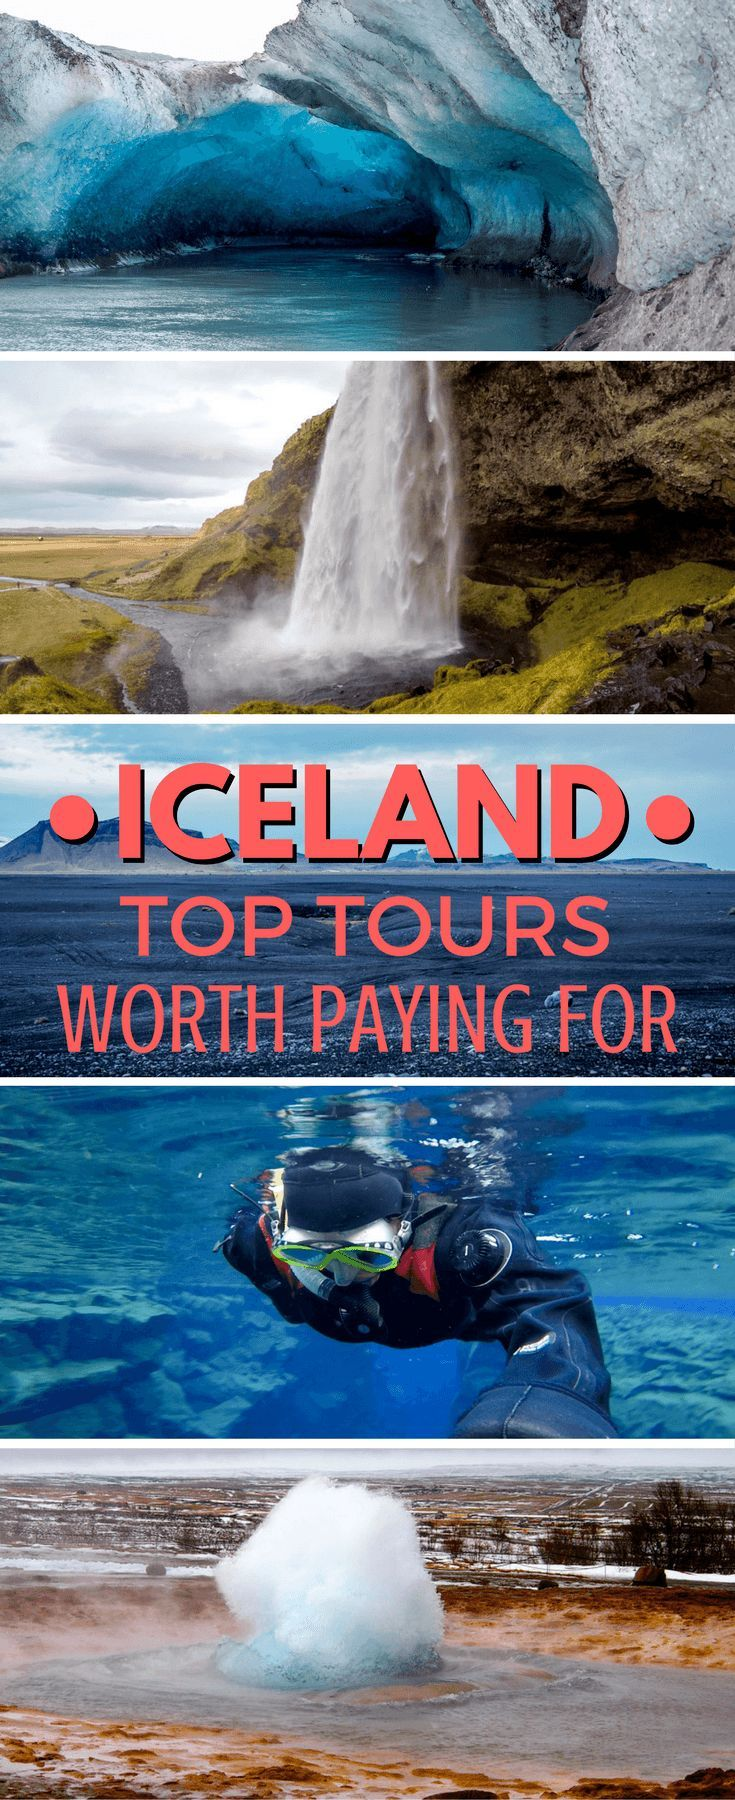 Best Tours Worth Paying for in #Iceland